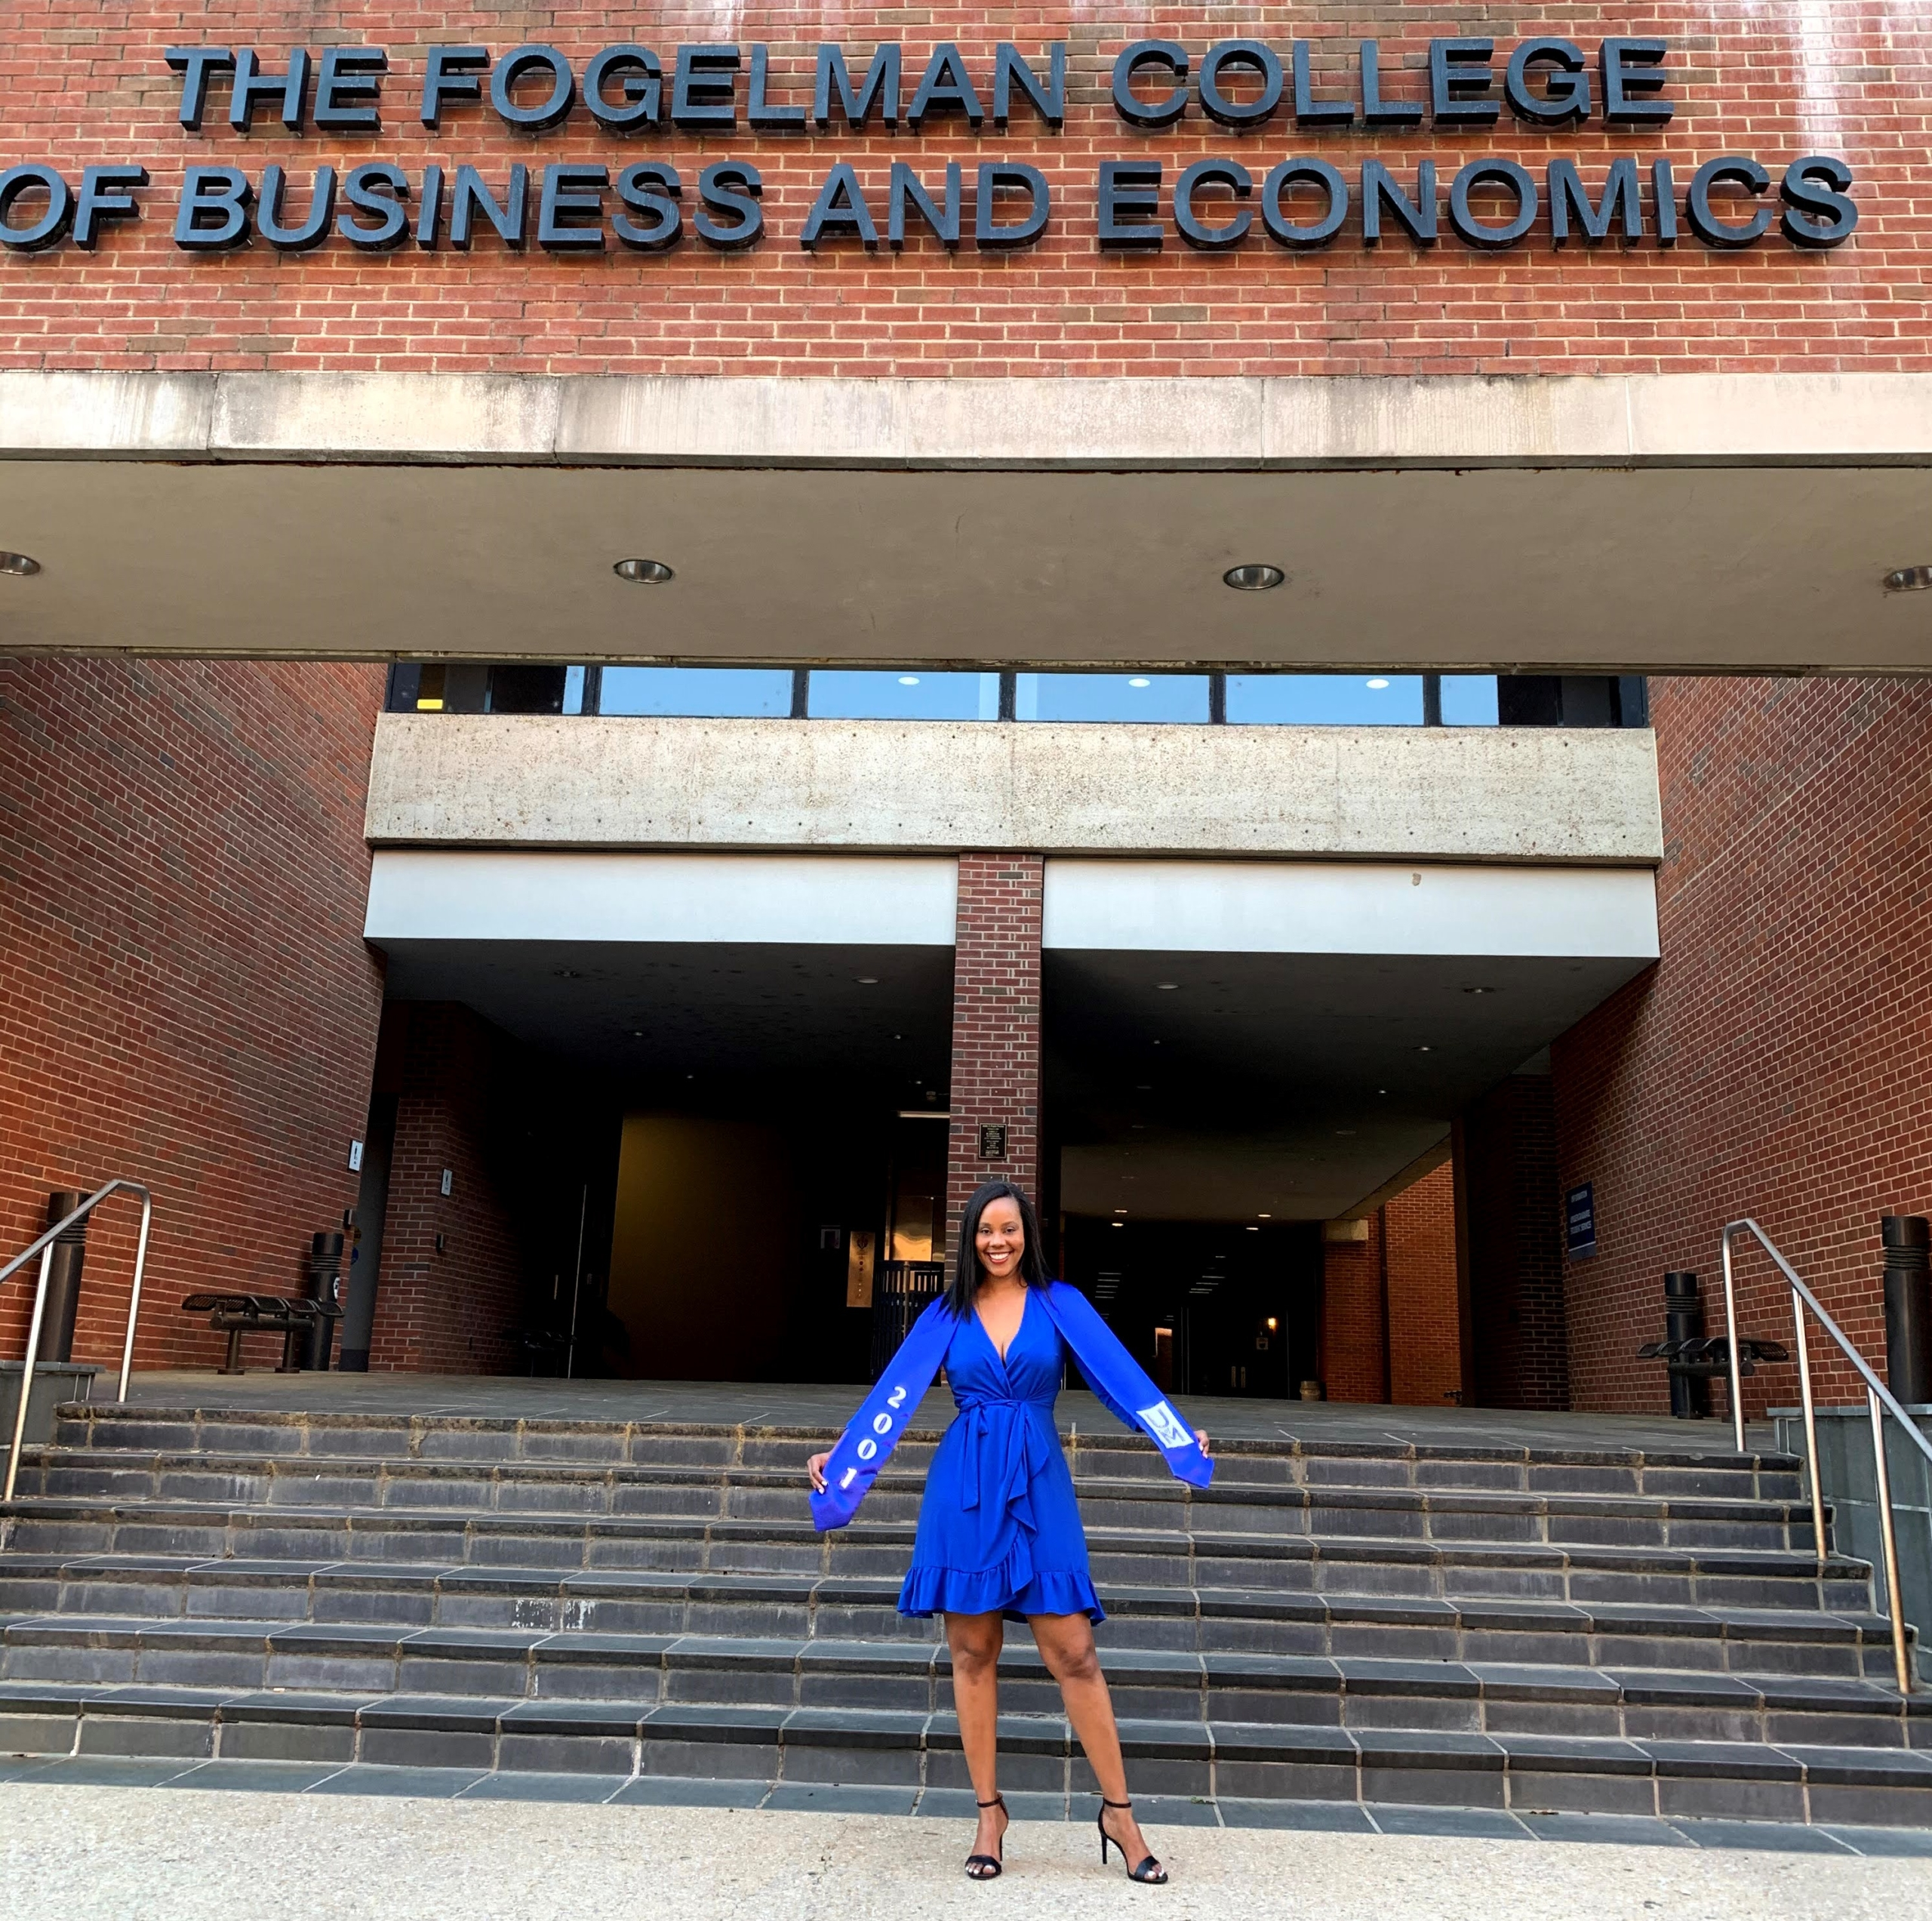 Summer Owens at Fogelman College of Business and Economics